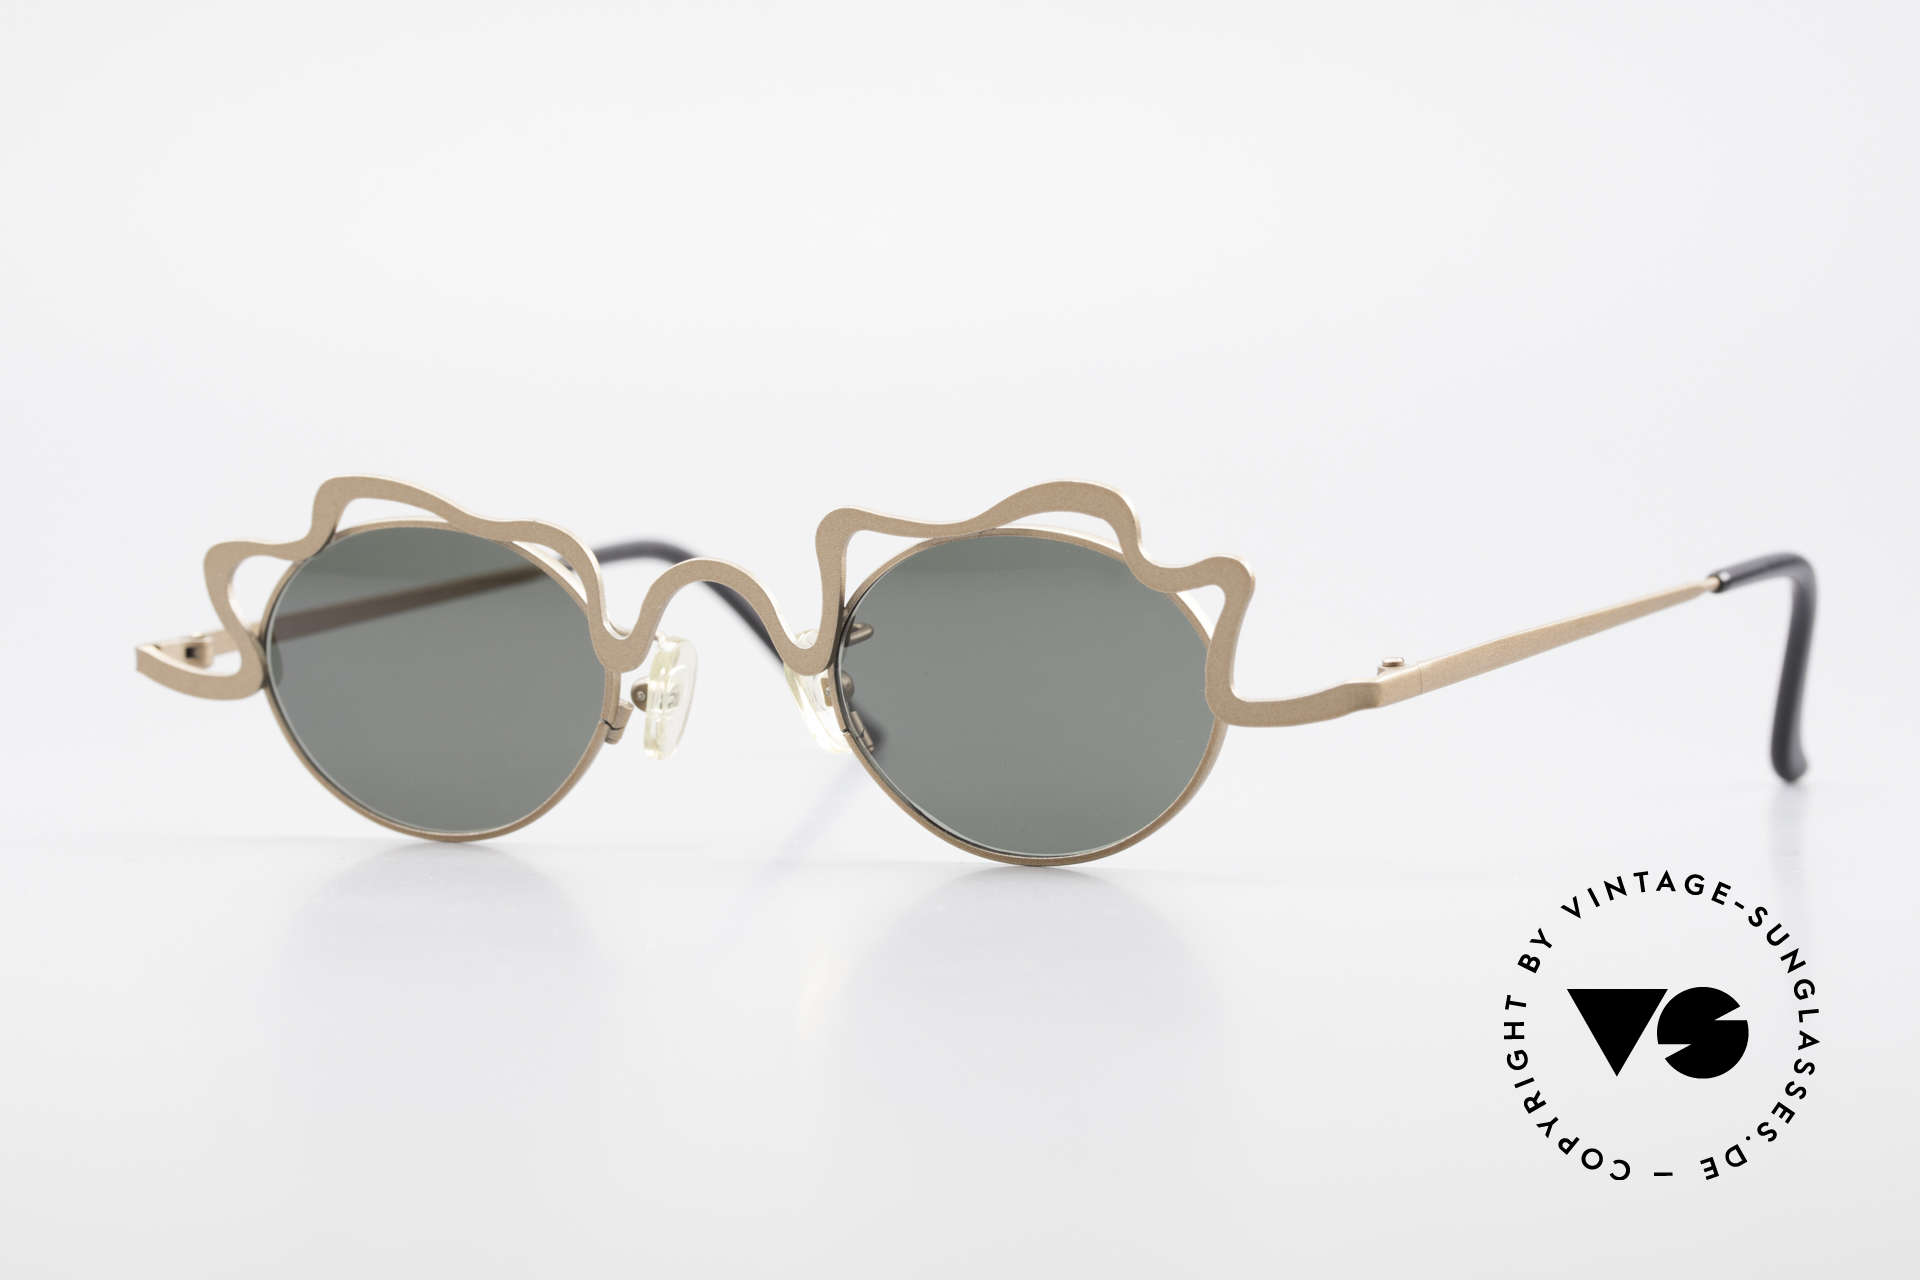 Theo Belgium Tortelini Spaghetti Sunglasses Ladies, Theo Belgium: the most self-willed brand in the world, Made for Women